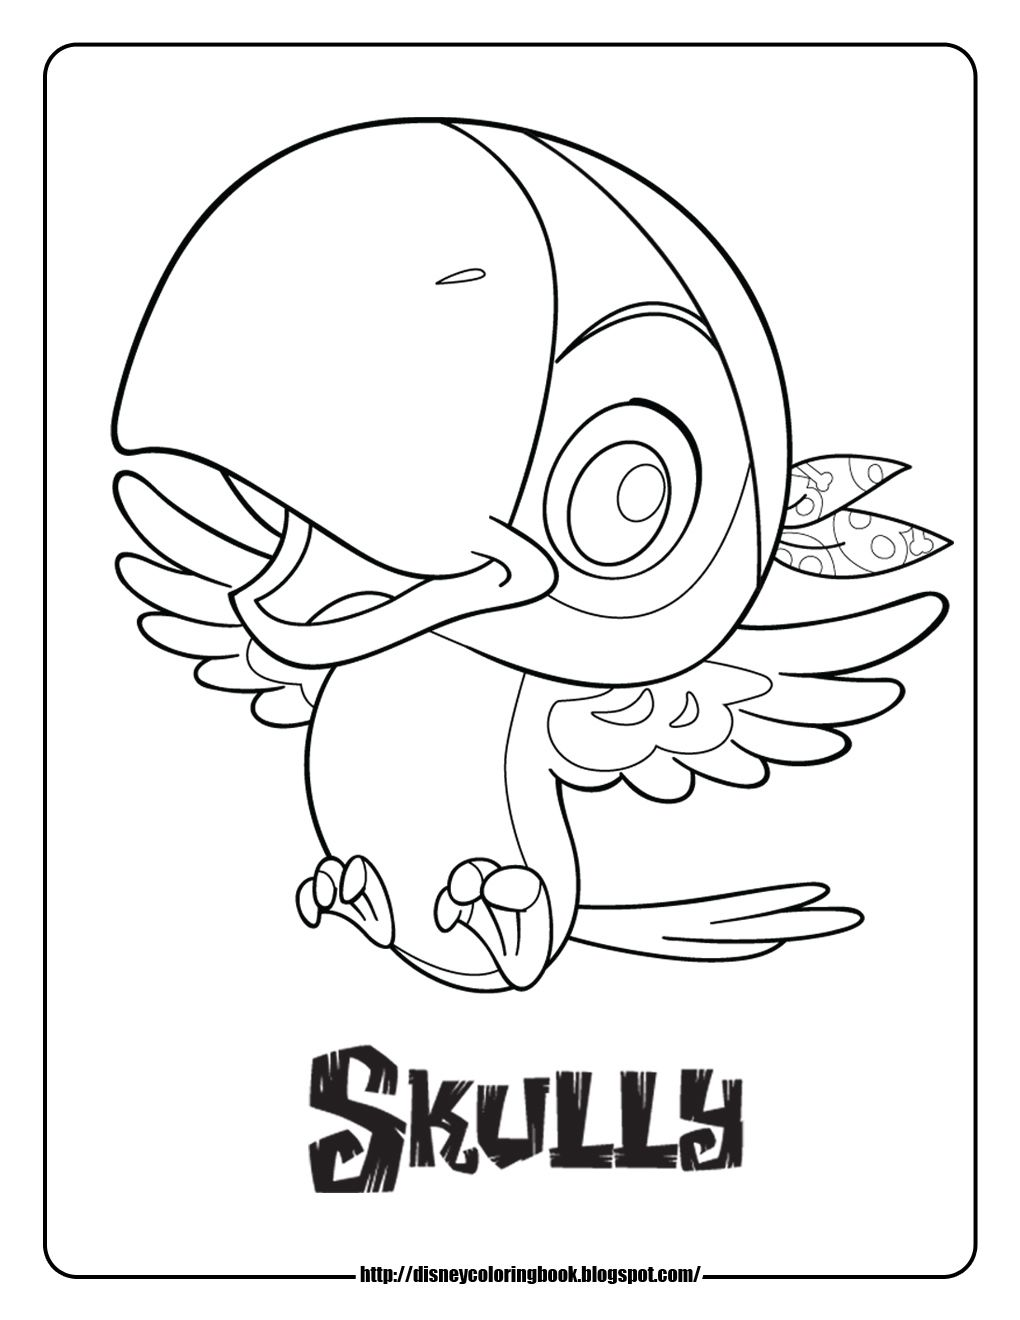 Jake and the never land pirates coloring pages skully for Jake neverland pirates coloring pages